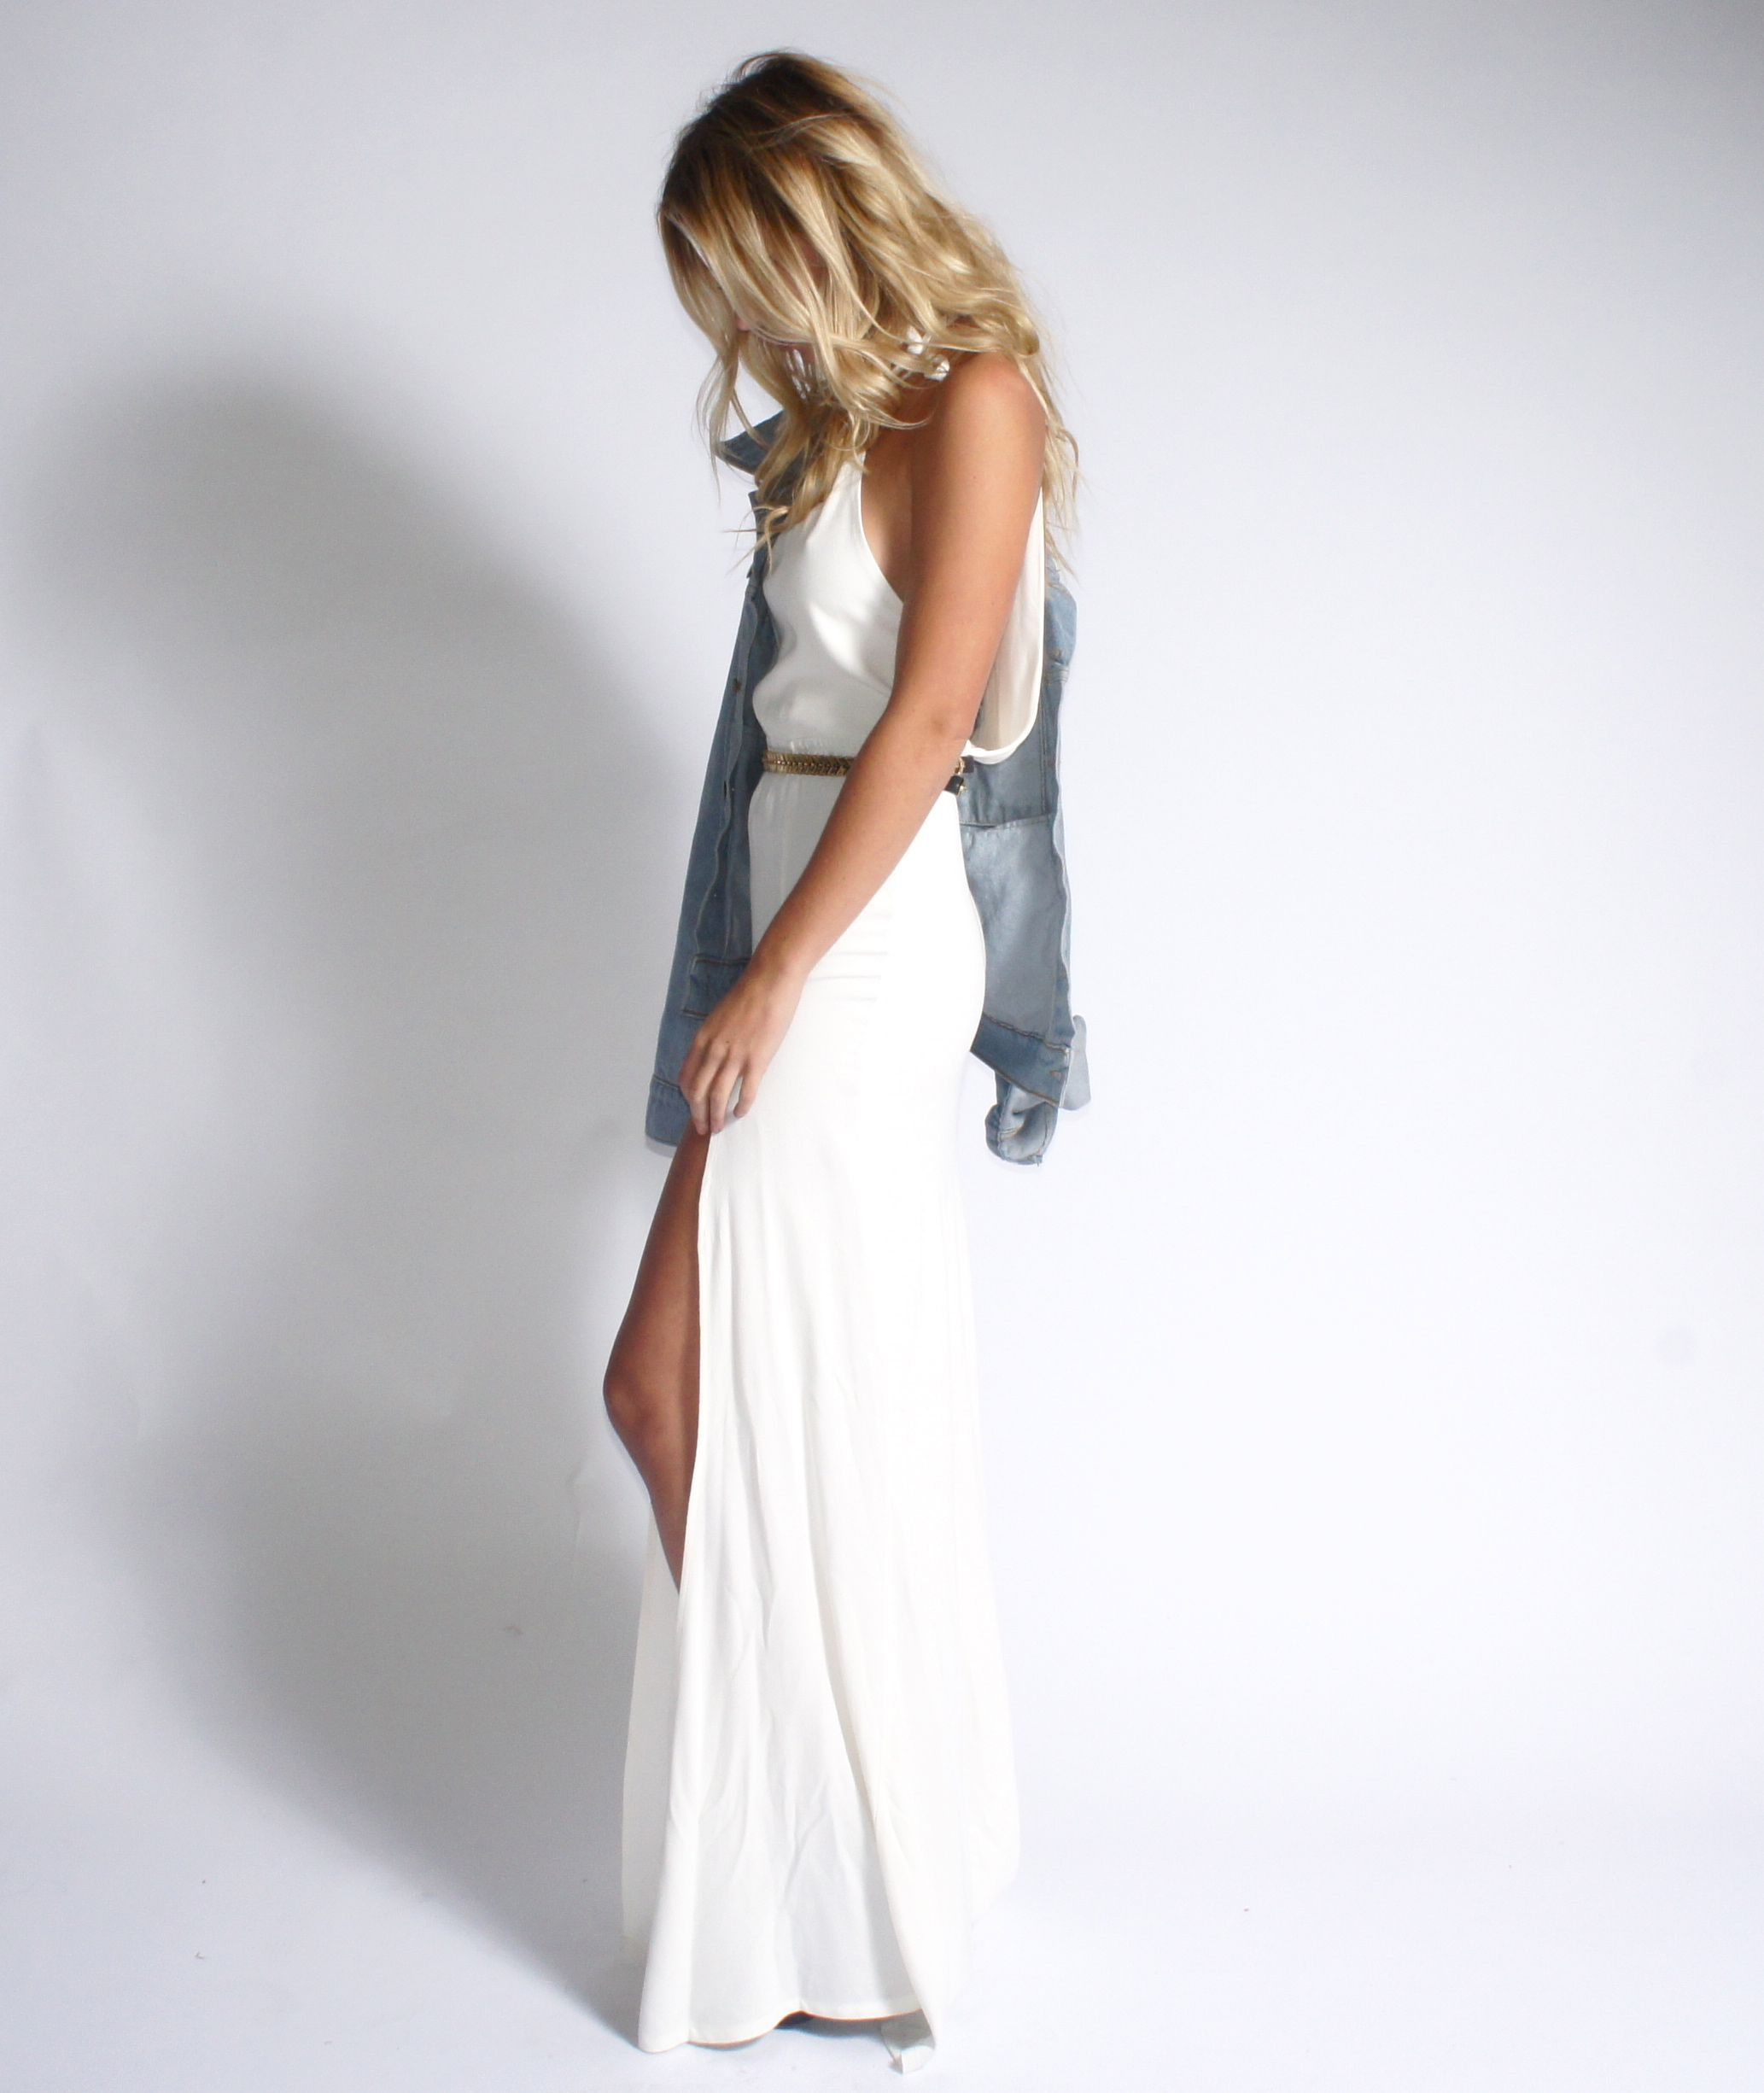 Stone Cold Fox - White Onyx Gown thestonecoldfox.com | STONE COLD ...